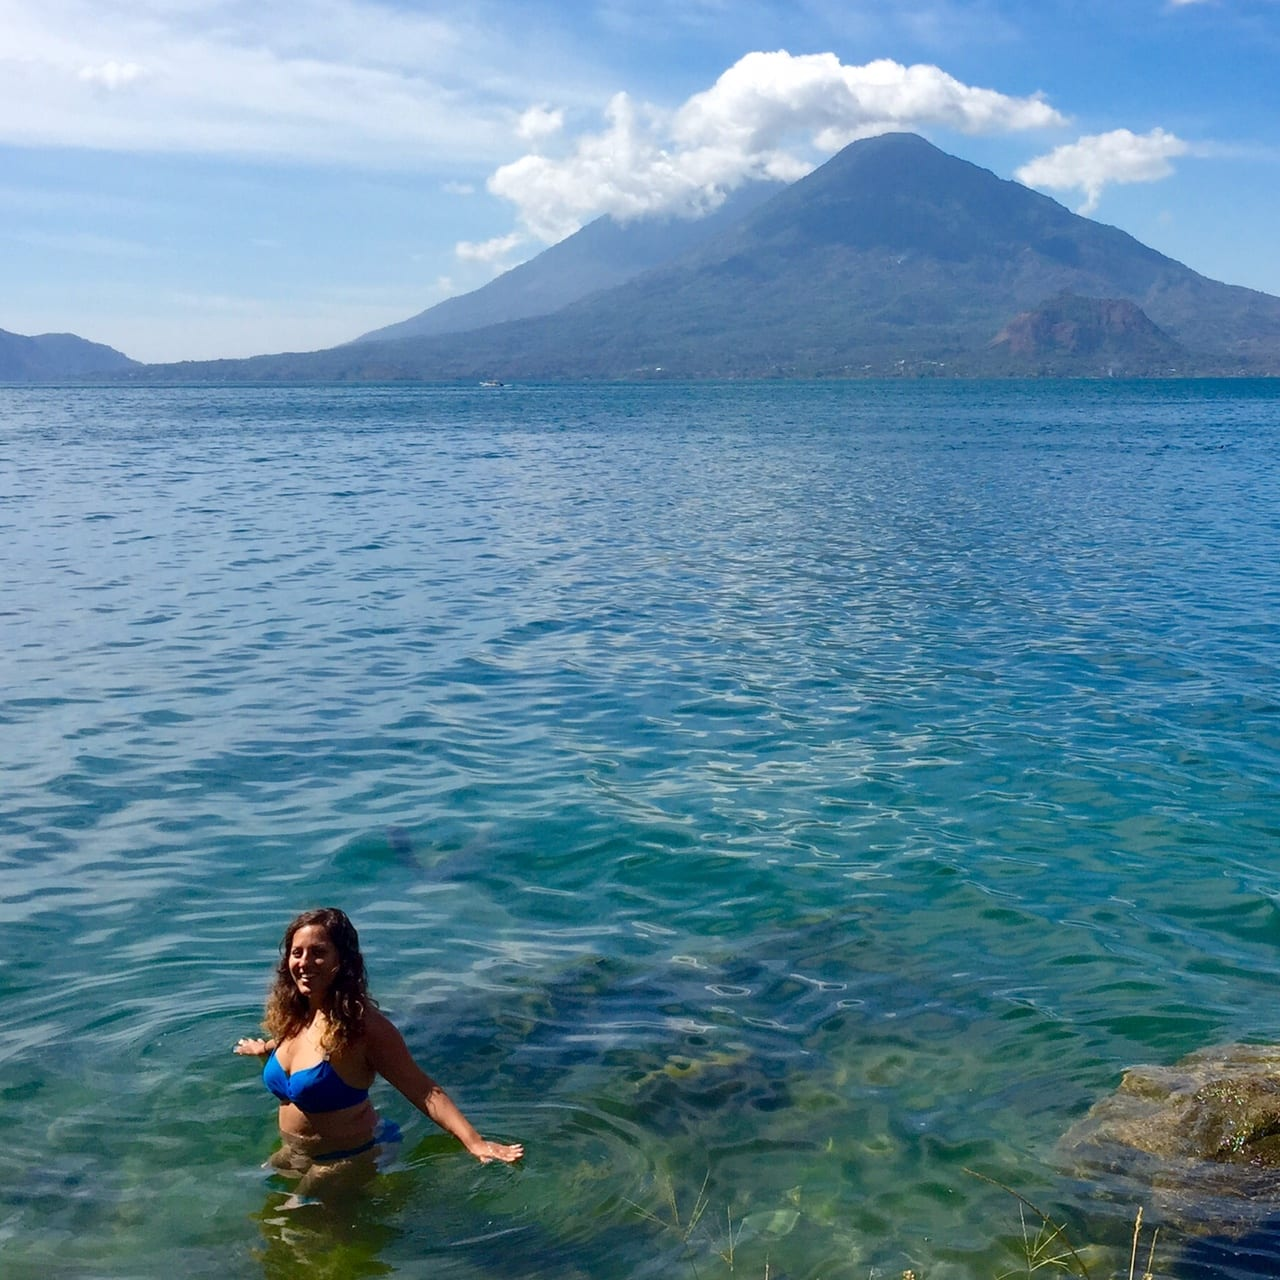 Kate in Lake Atitlan